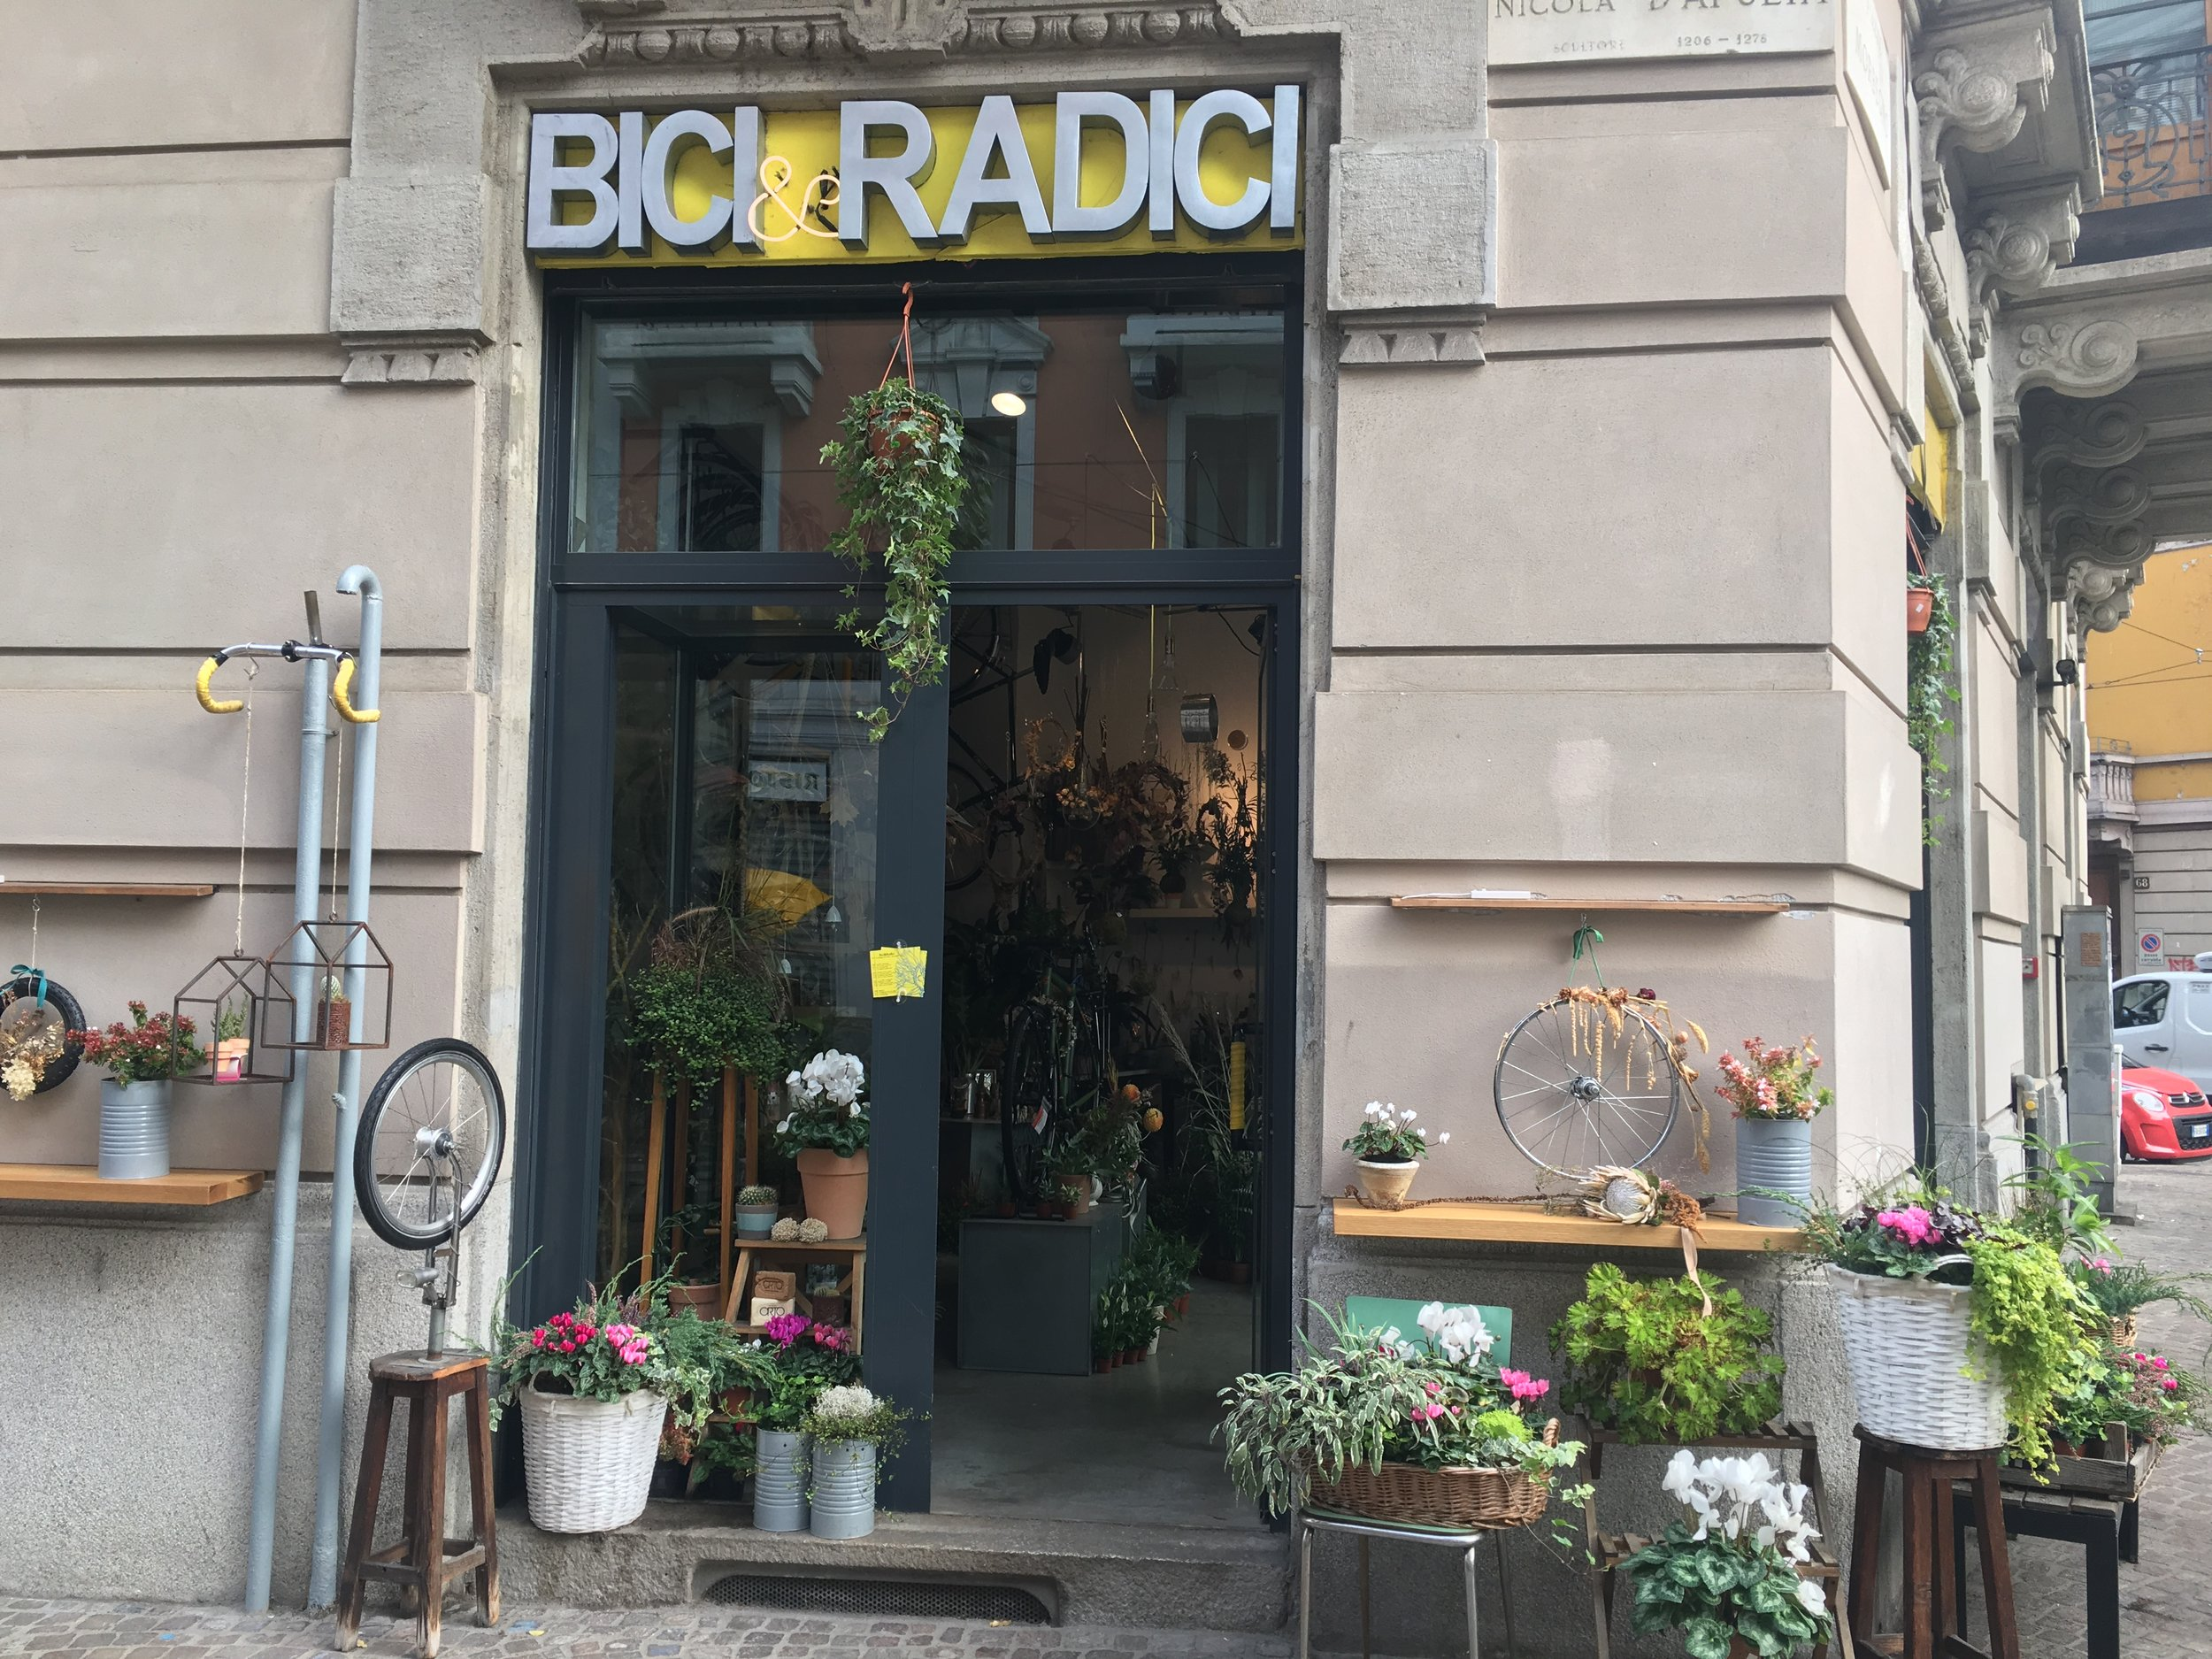 Bici and Radici was the cutest and least practical bike shop I've ever been in.